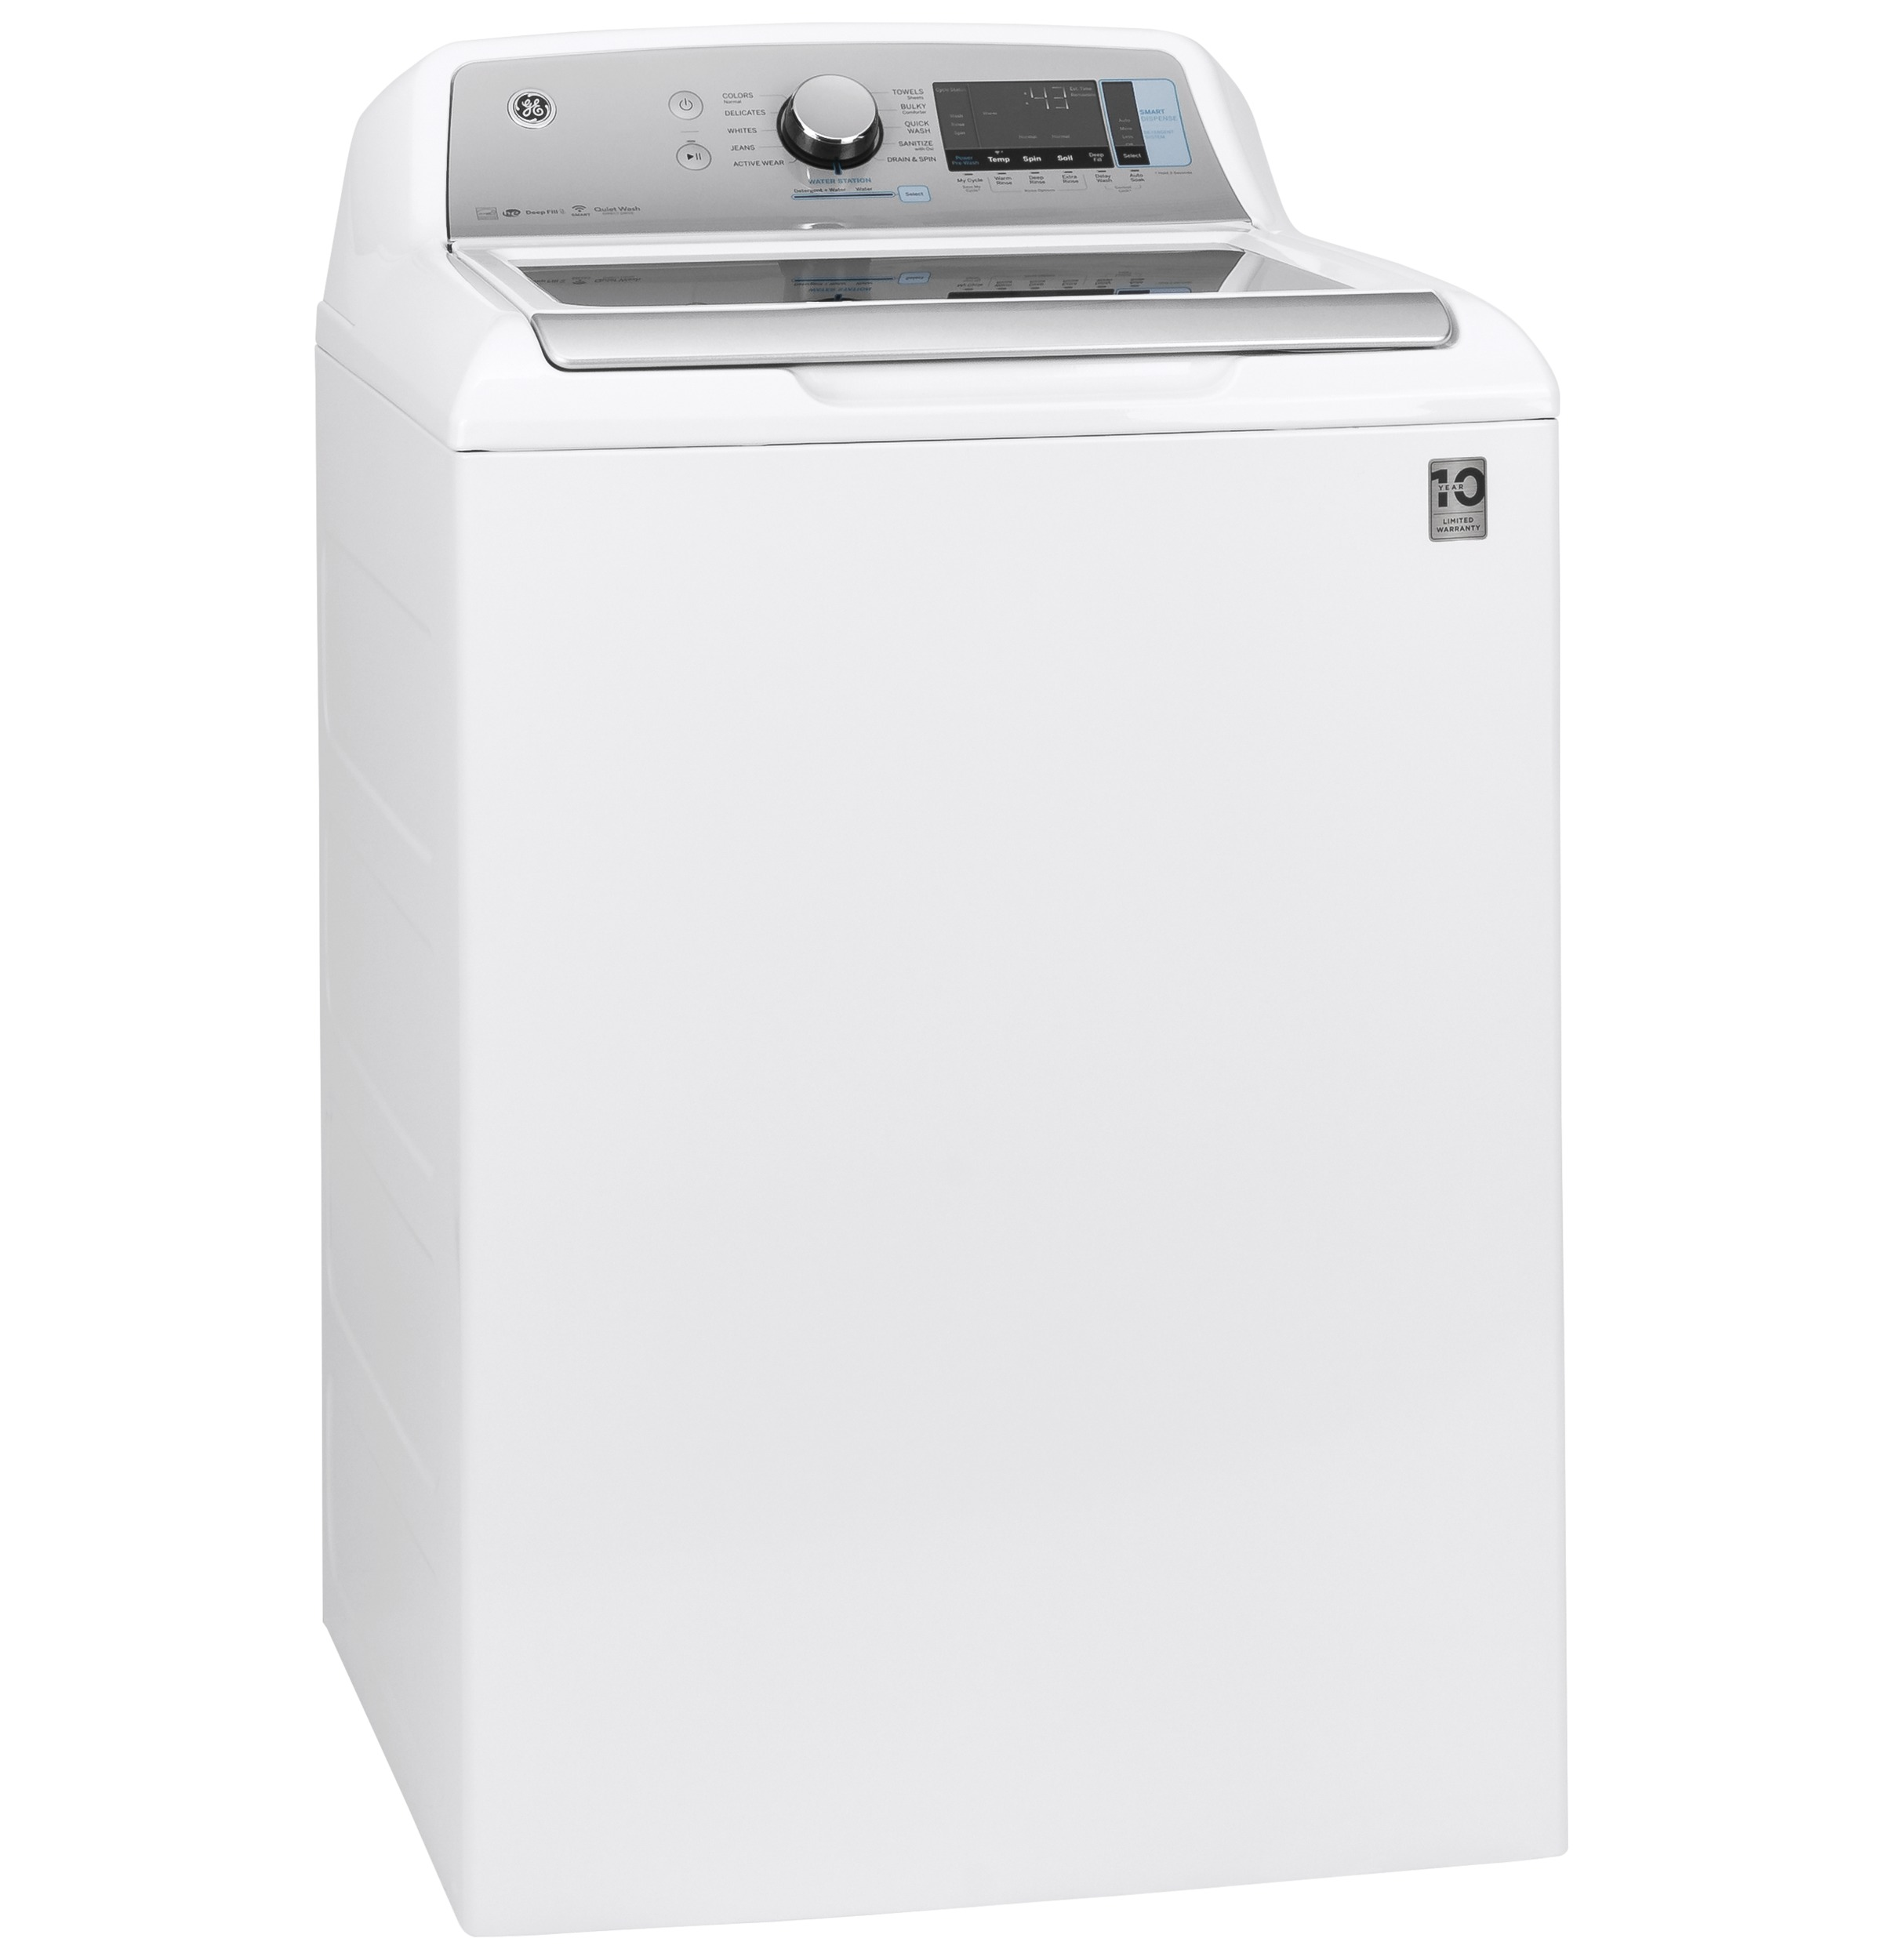 Model: GTW840CSNWS | GE GE® 5.2  cu. ft. Capacity Smart Washer with Sanitize w/Oxi and SmartDispense